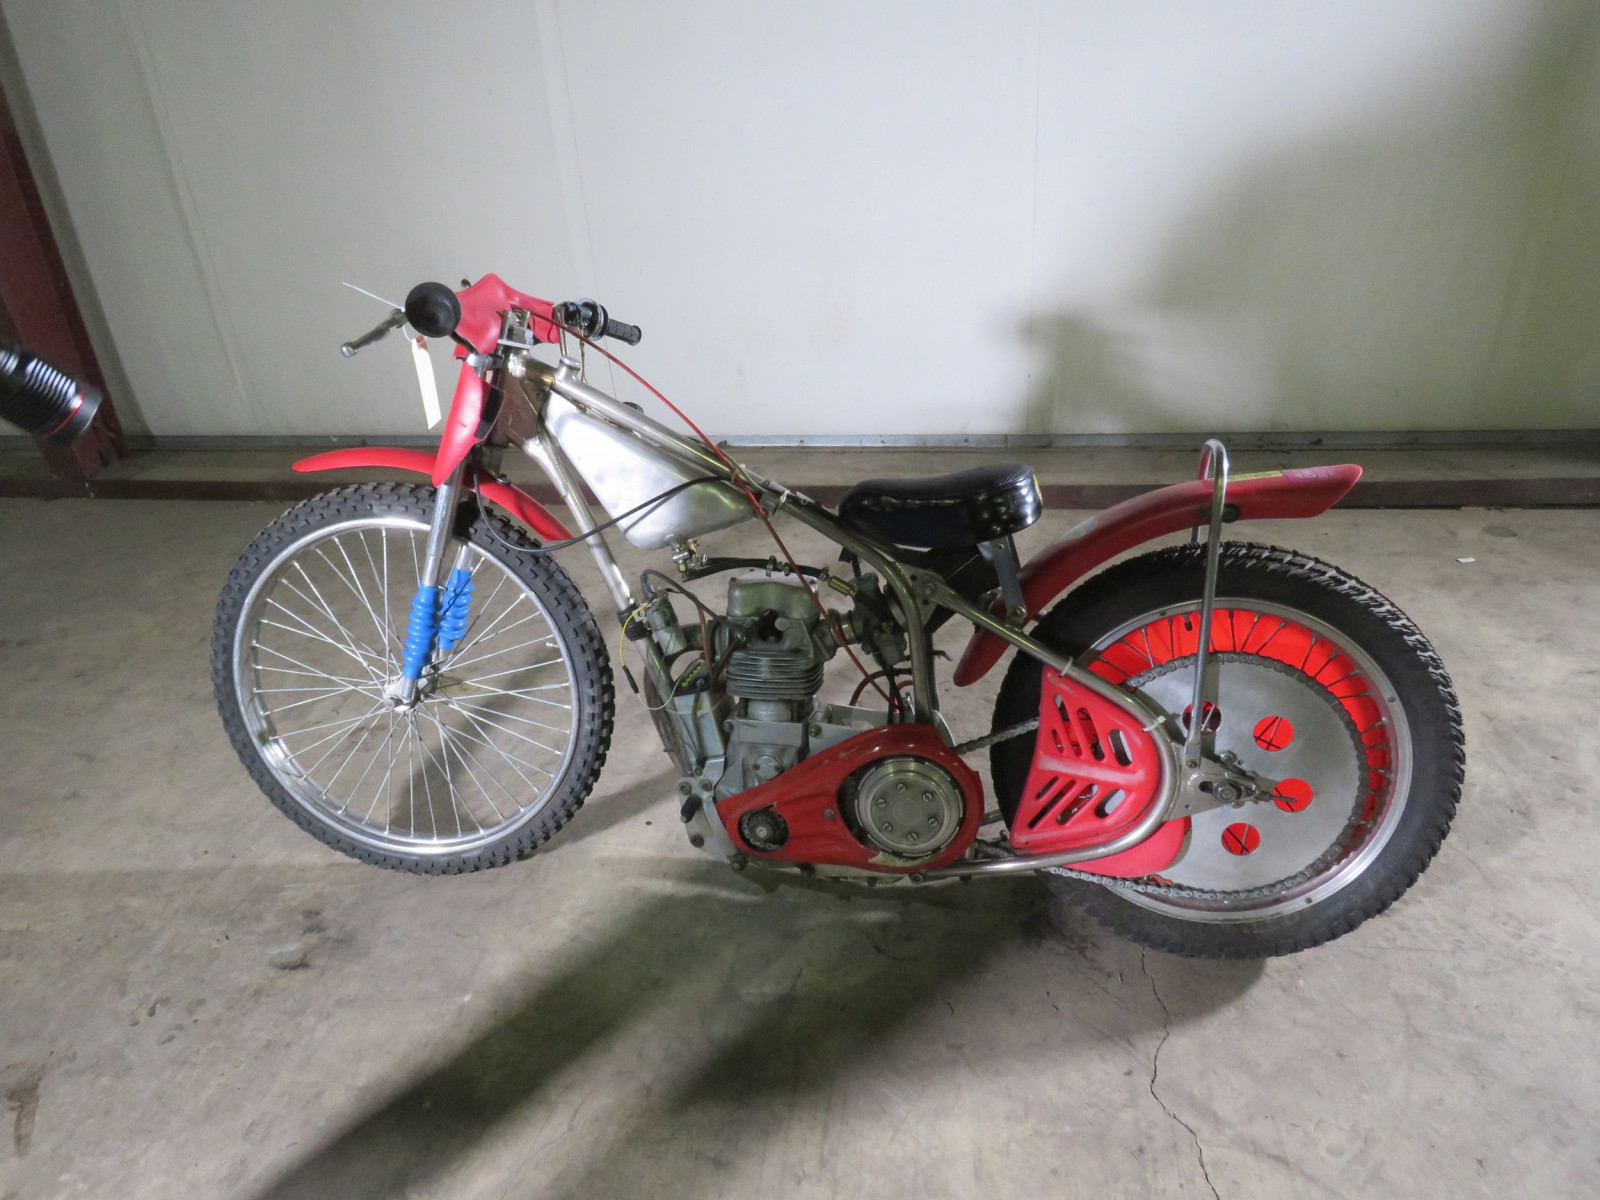 Speedway Racer Motorcycle - Image 1